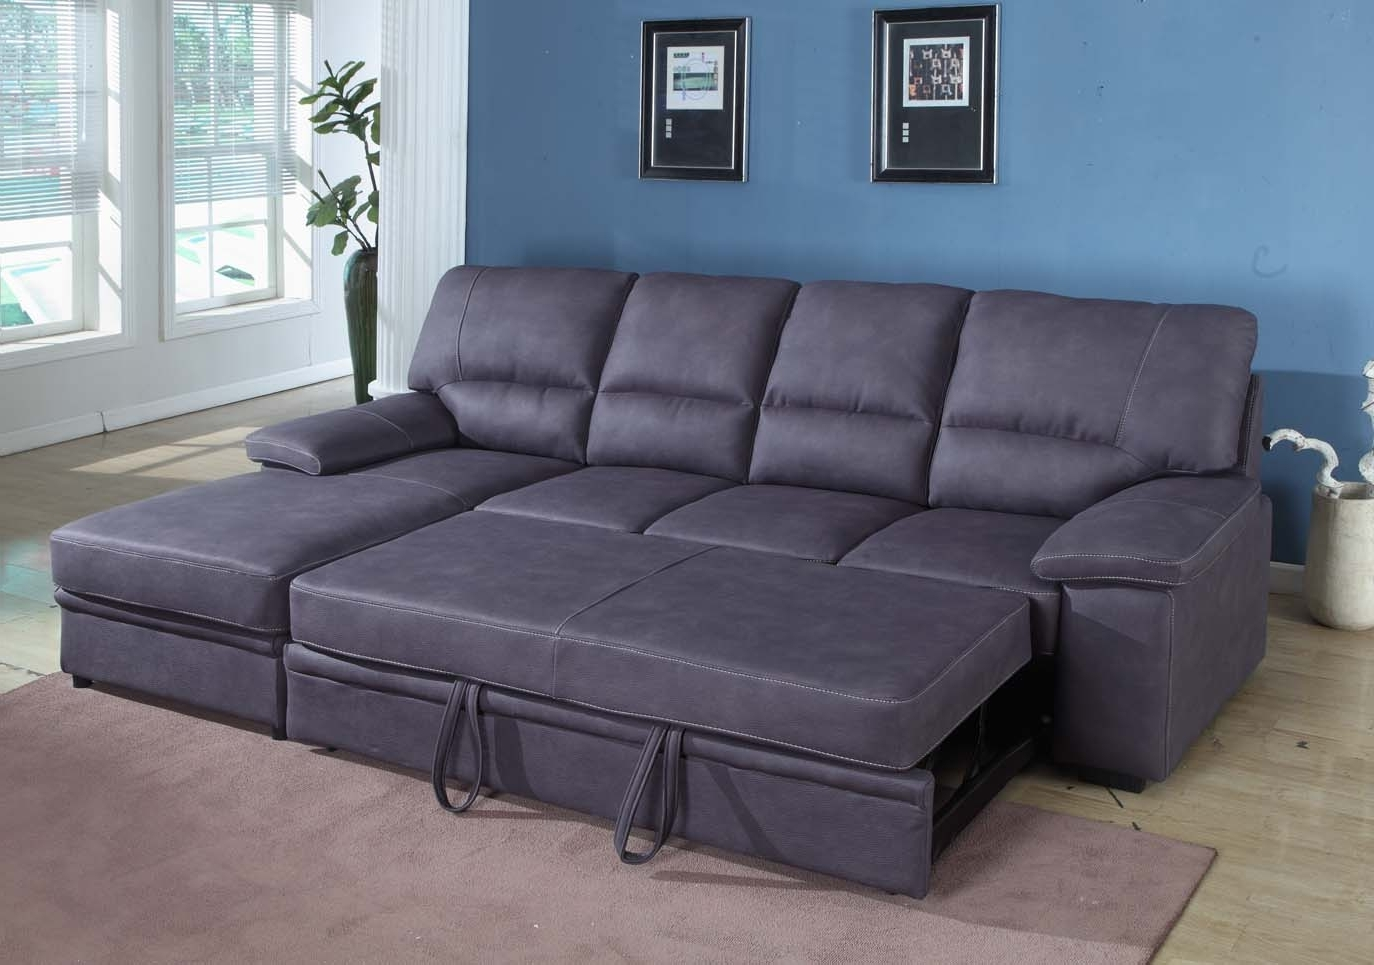 Current Furniture : Sectional Sofa Nj Best Sectional Sofa Under 500 For Jacksonville Fl Sectional Sofas (View 16 of 20)